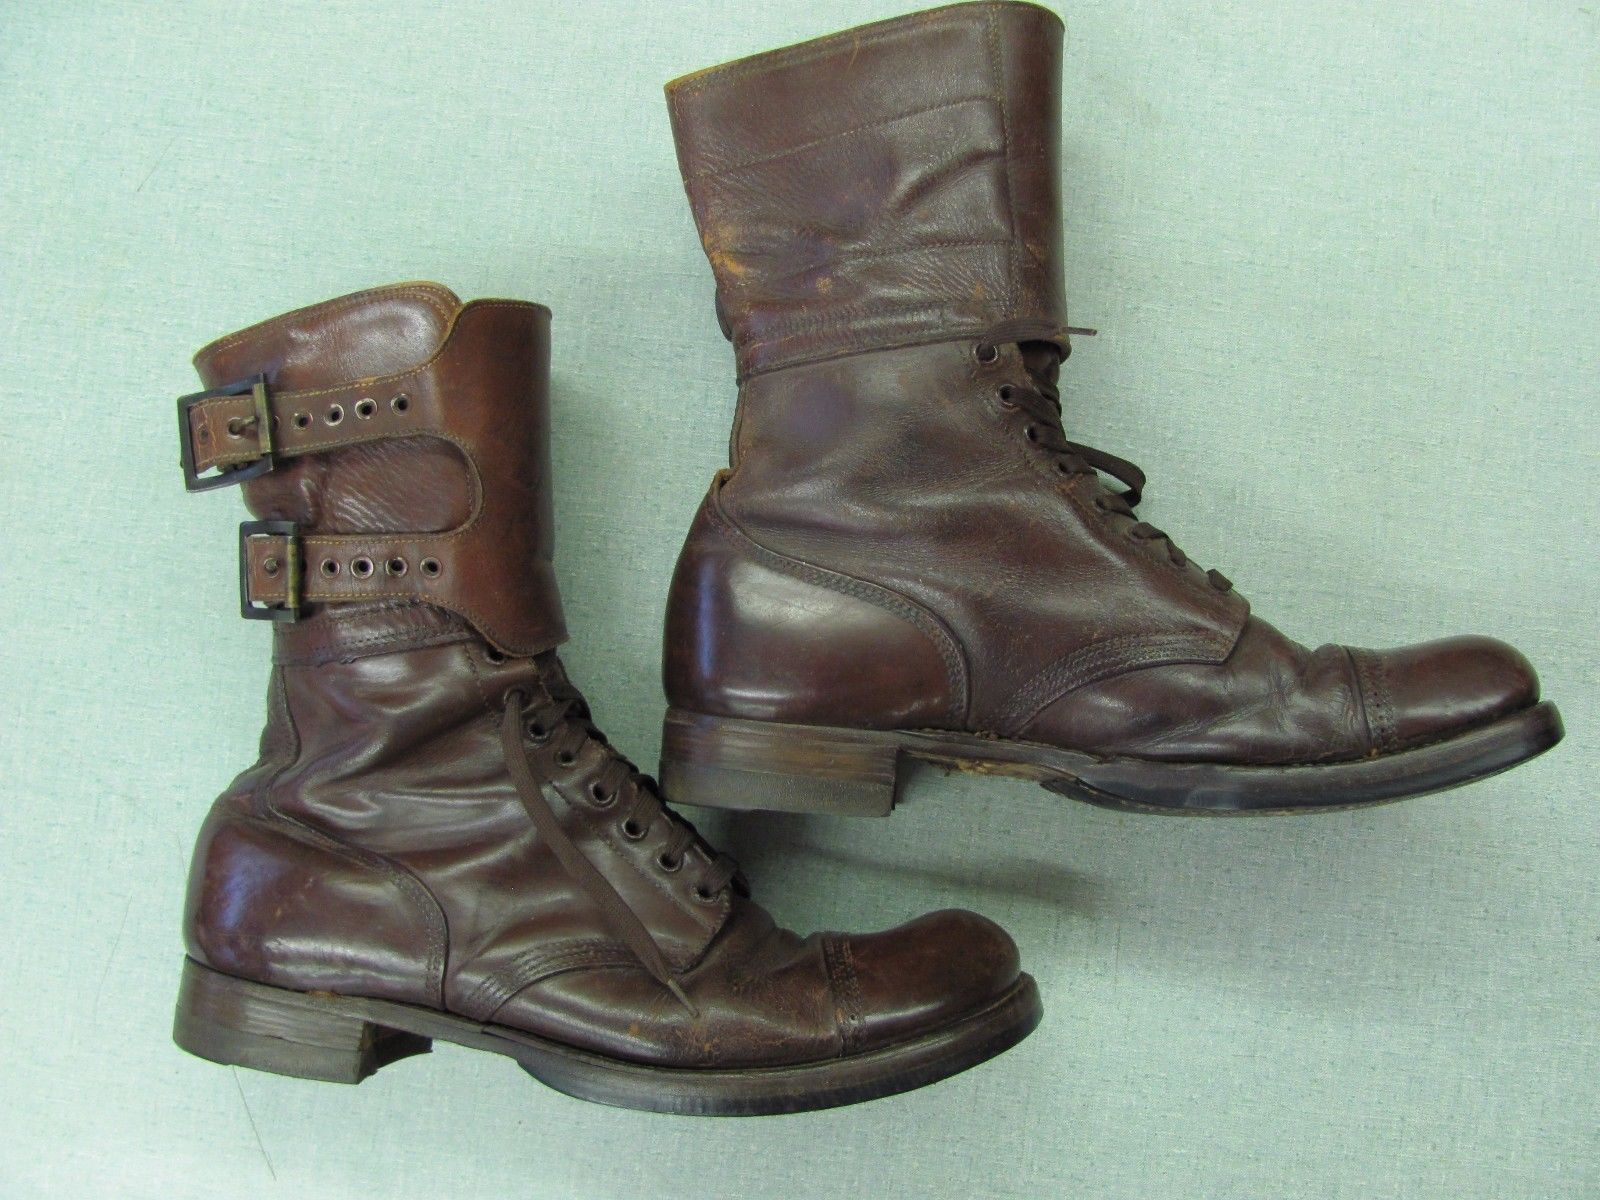 c9f4f650a39b Original WW2 US Army Double Buckle Combat Boots Russet Leather Size 11 1  2  B in Collectibles